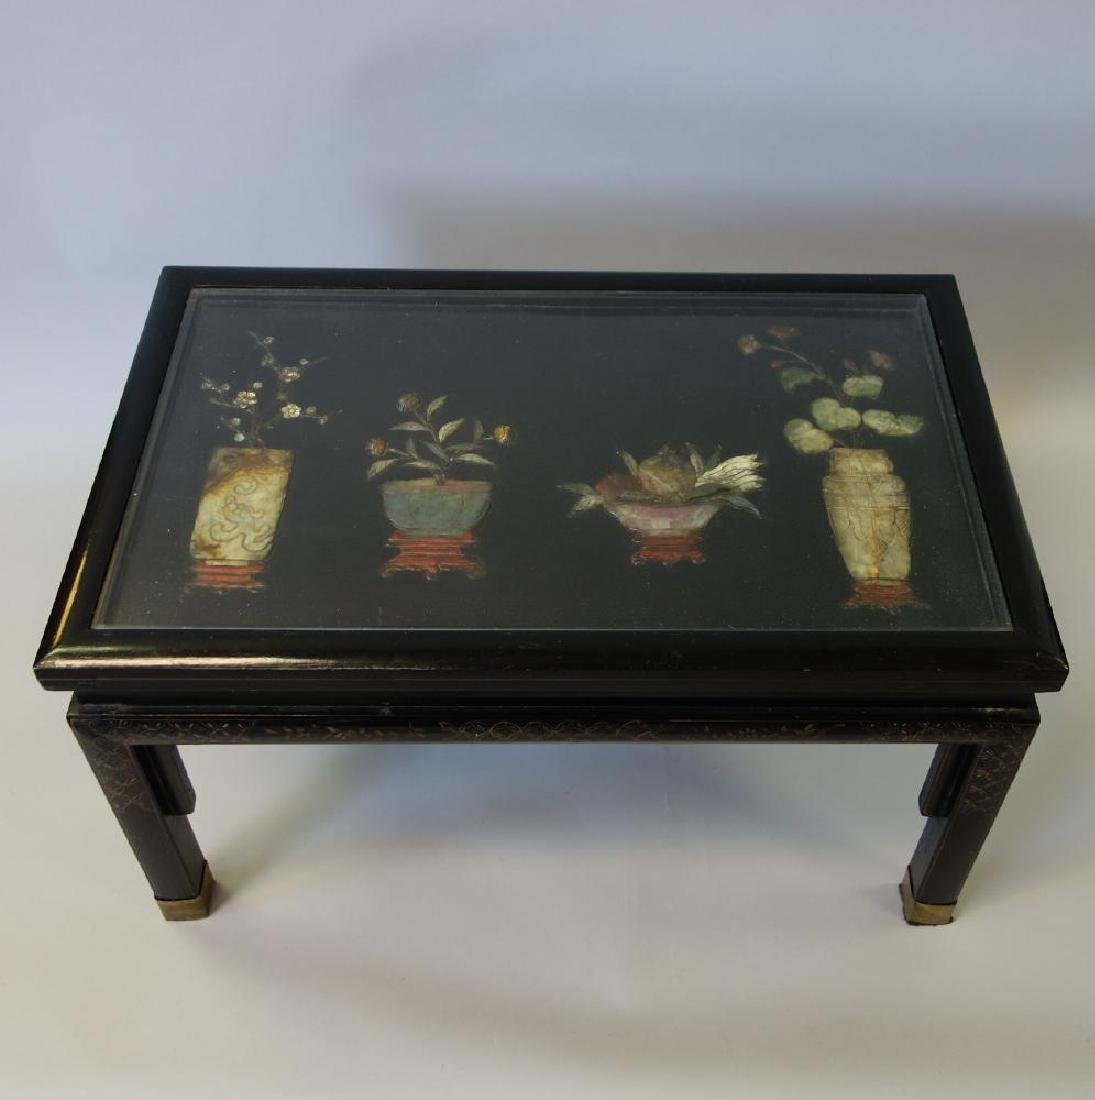 Chinese Lacquer, Gilt & Hardstone Diminutive Table